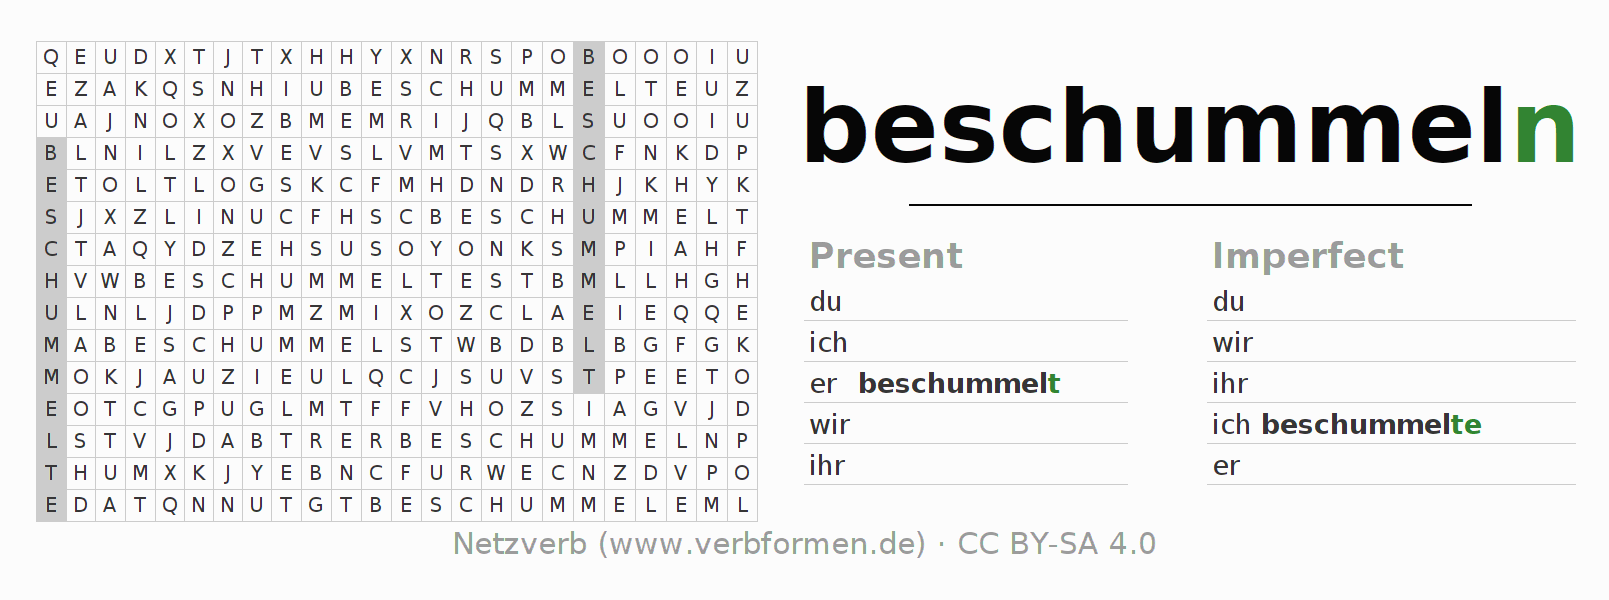 Word search puzzle for the conjugation of the verb beschummeln